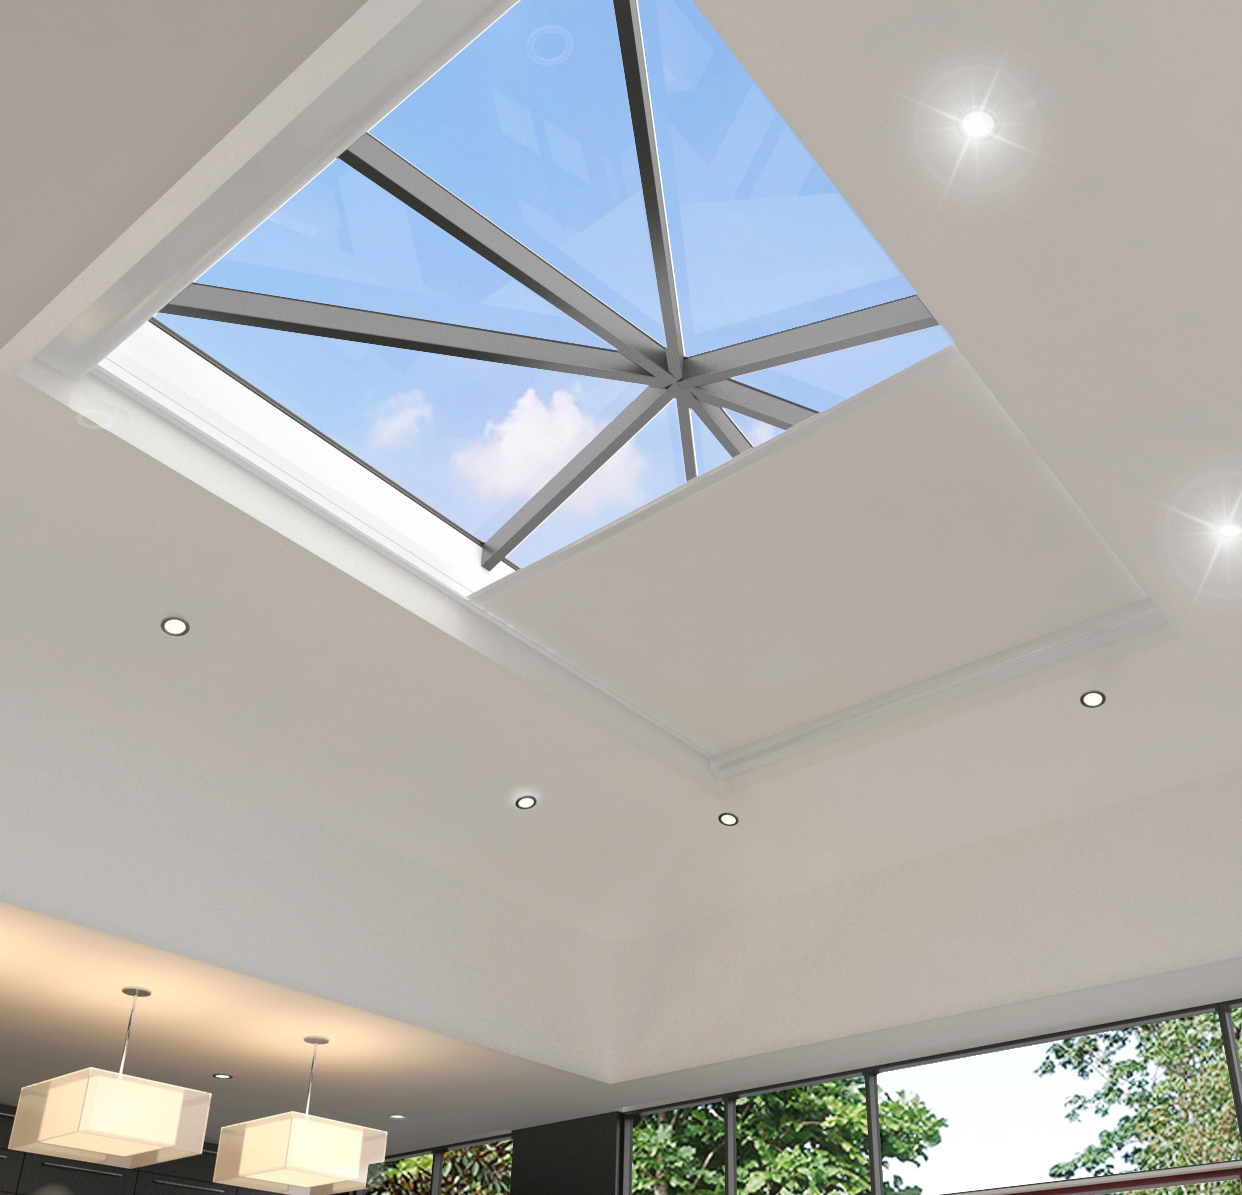 Looking For Velux Blinds Shop Our Own Brand Skylight Blinds To Fit Velux Windows Perfectly